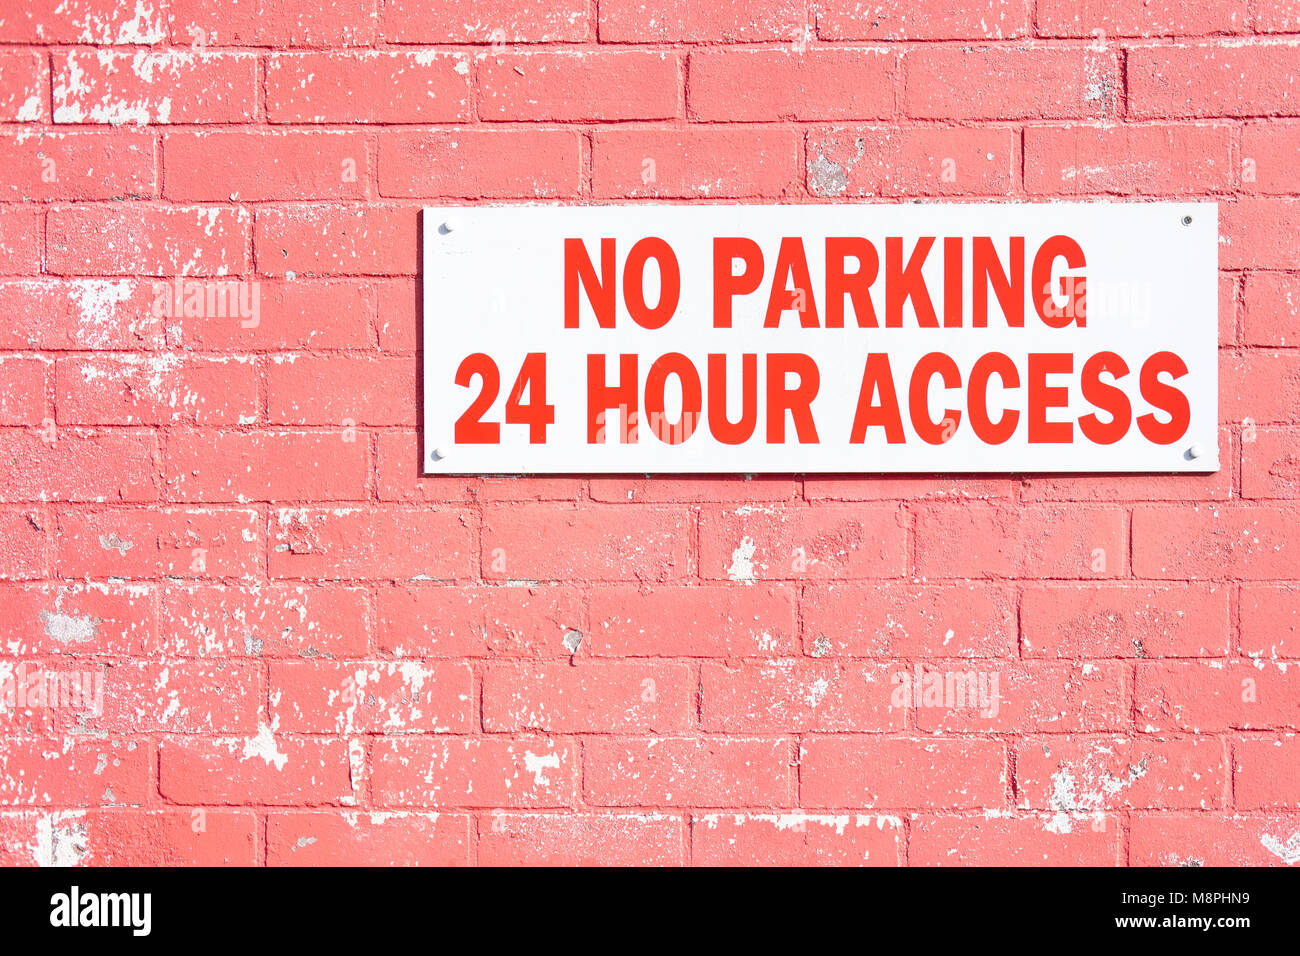 No parking 24 hour hr access required sign on red brick wall Stock Photo